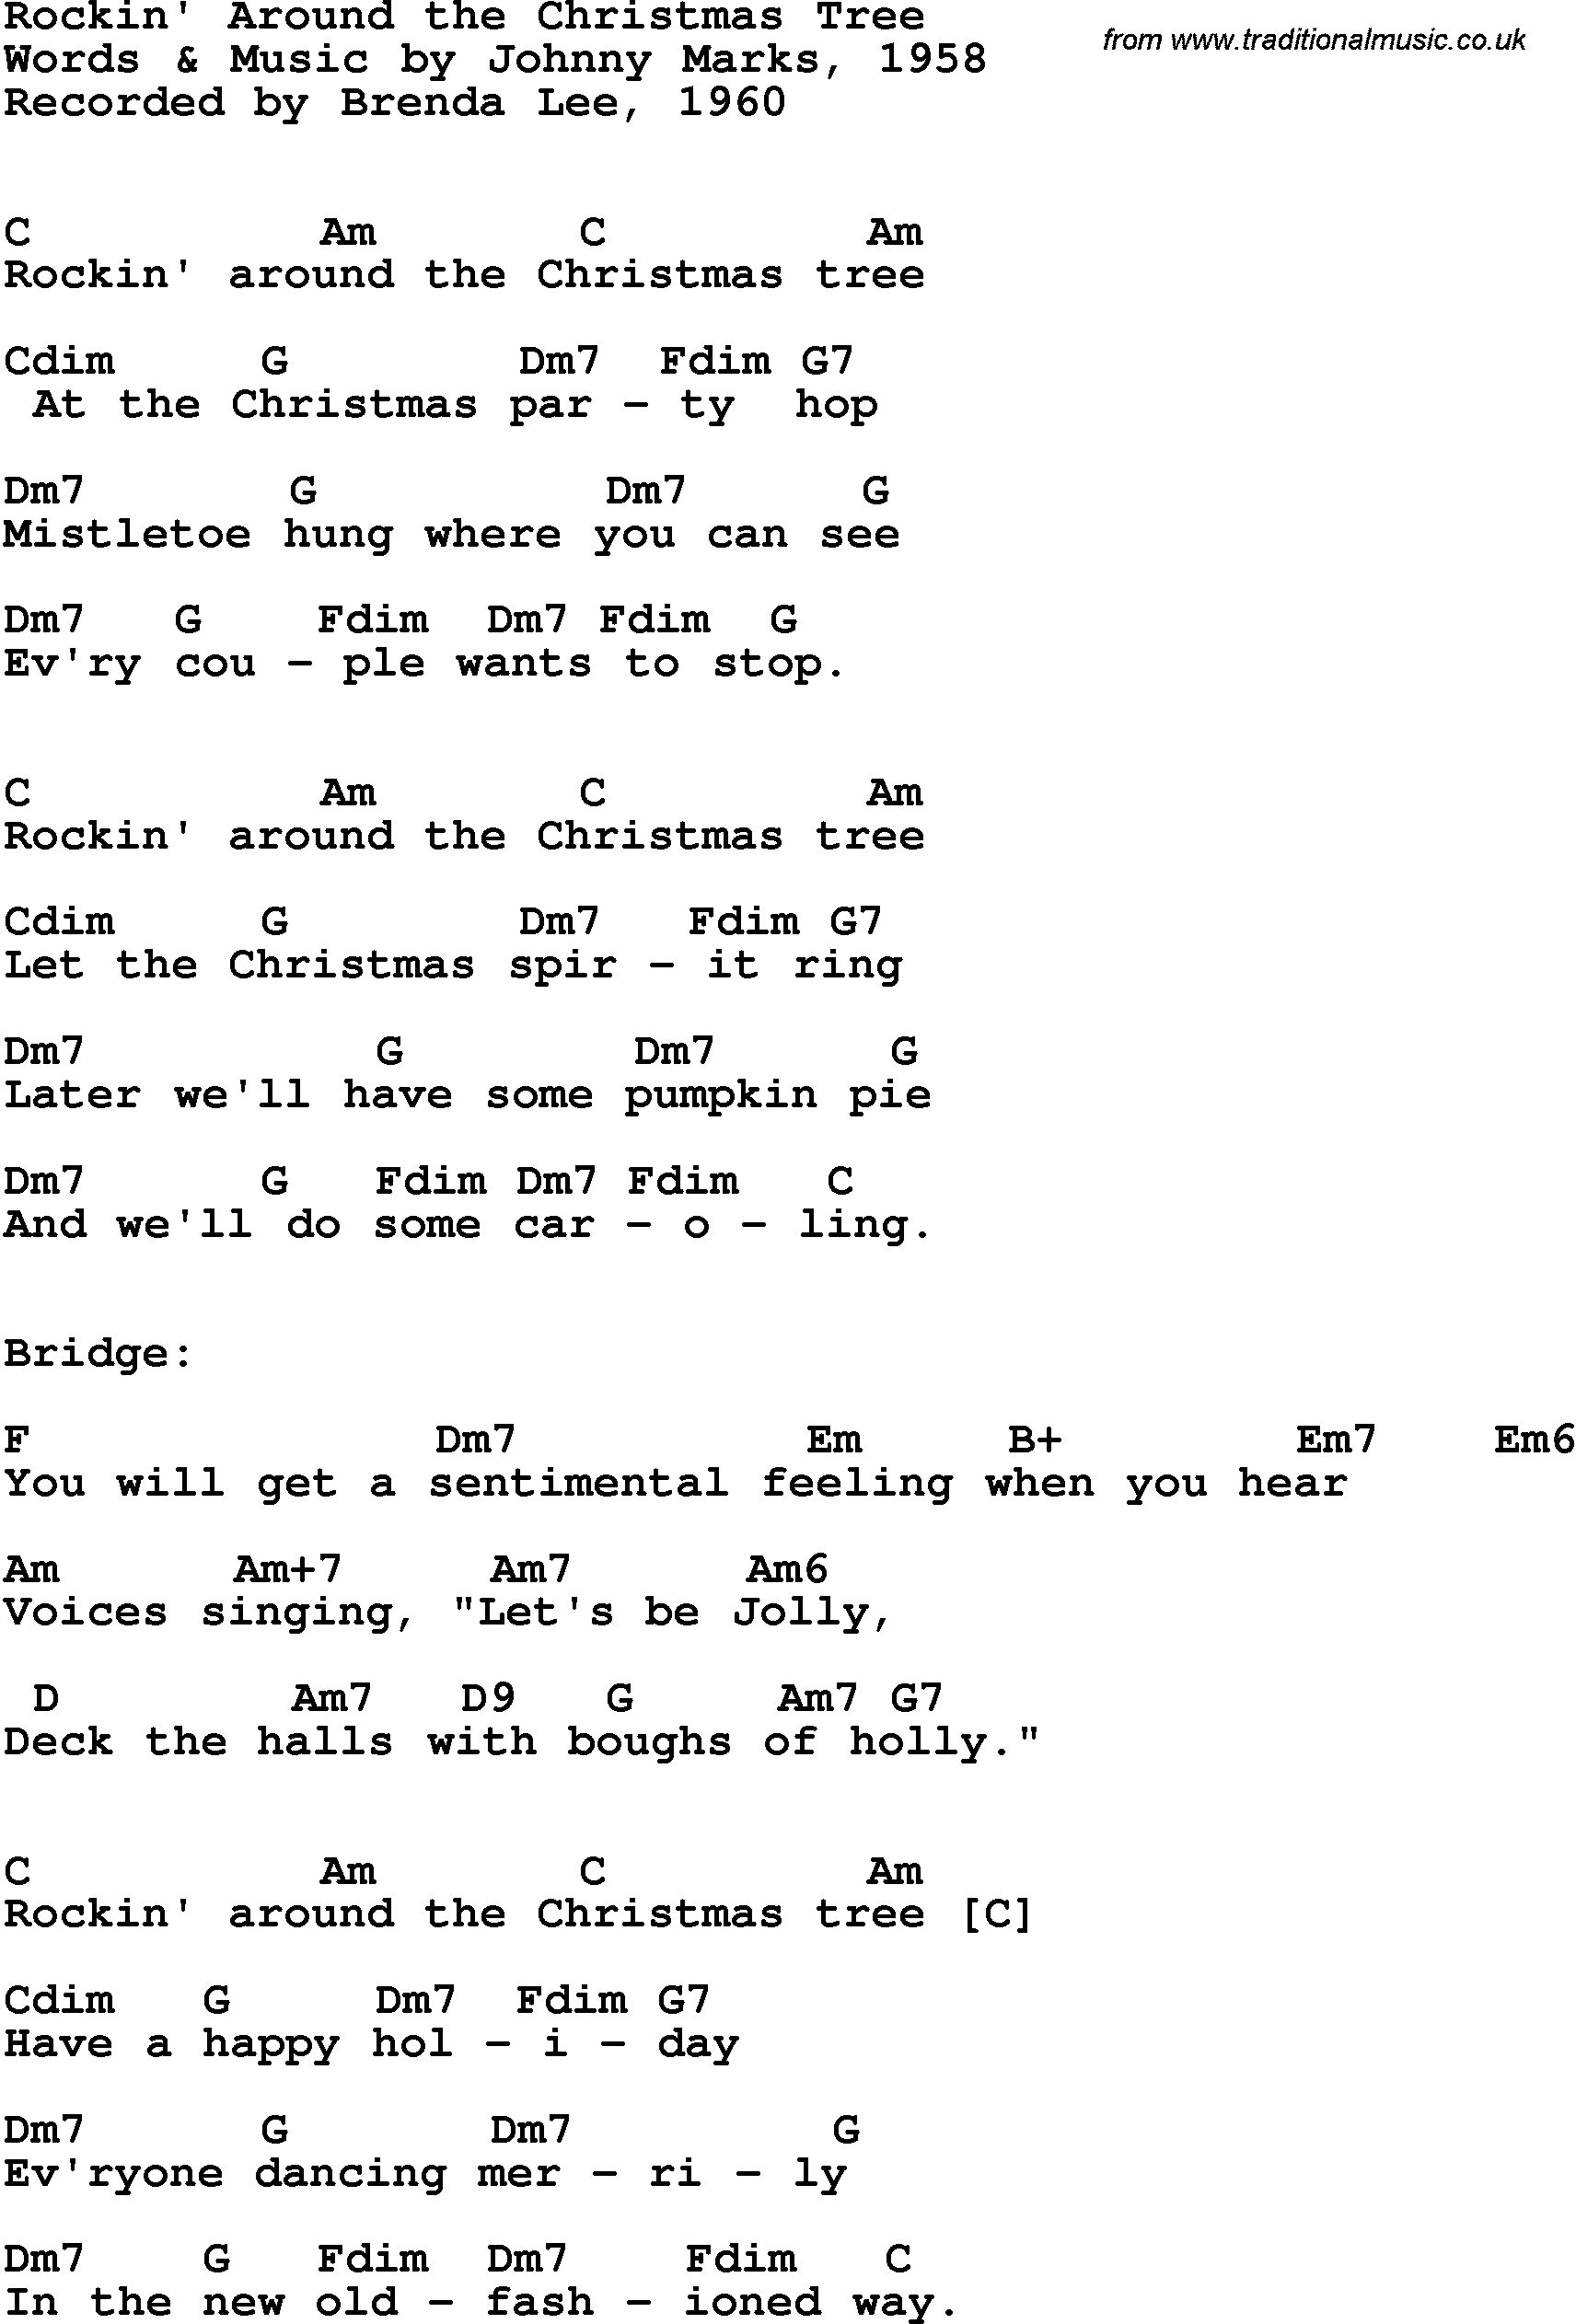 Song lyrics with guitar chords for Rockin' Around The Christmas ...